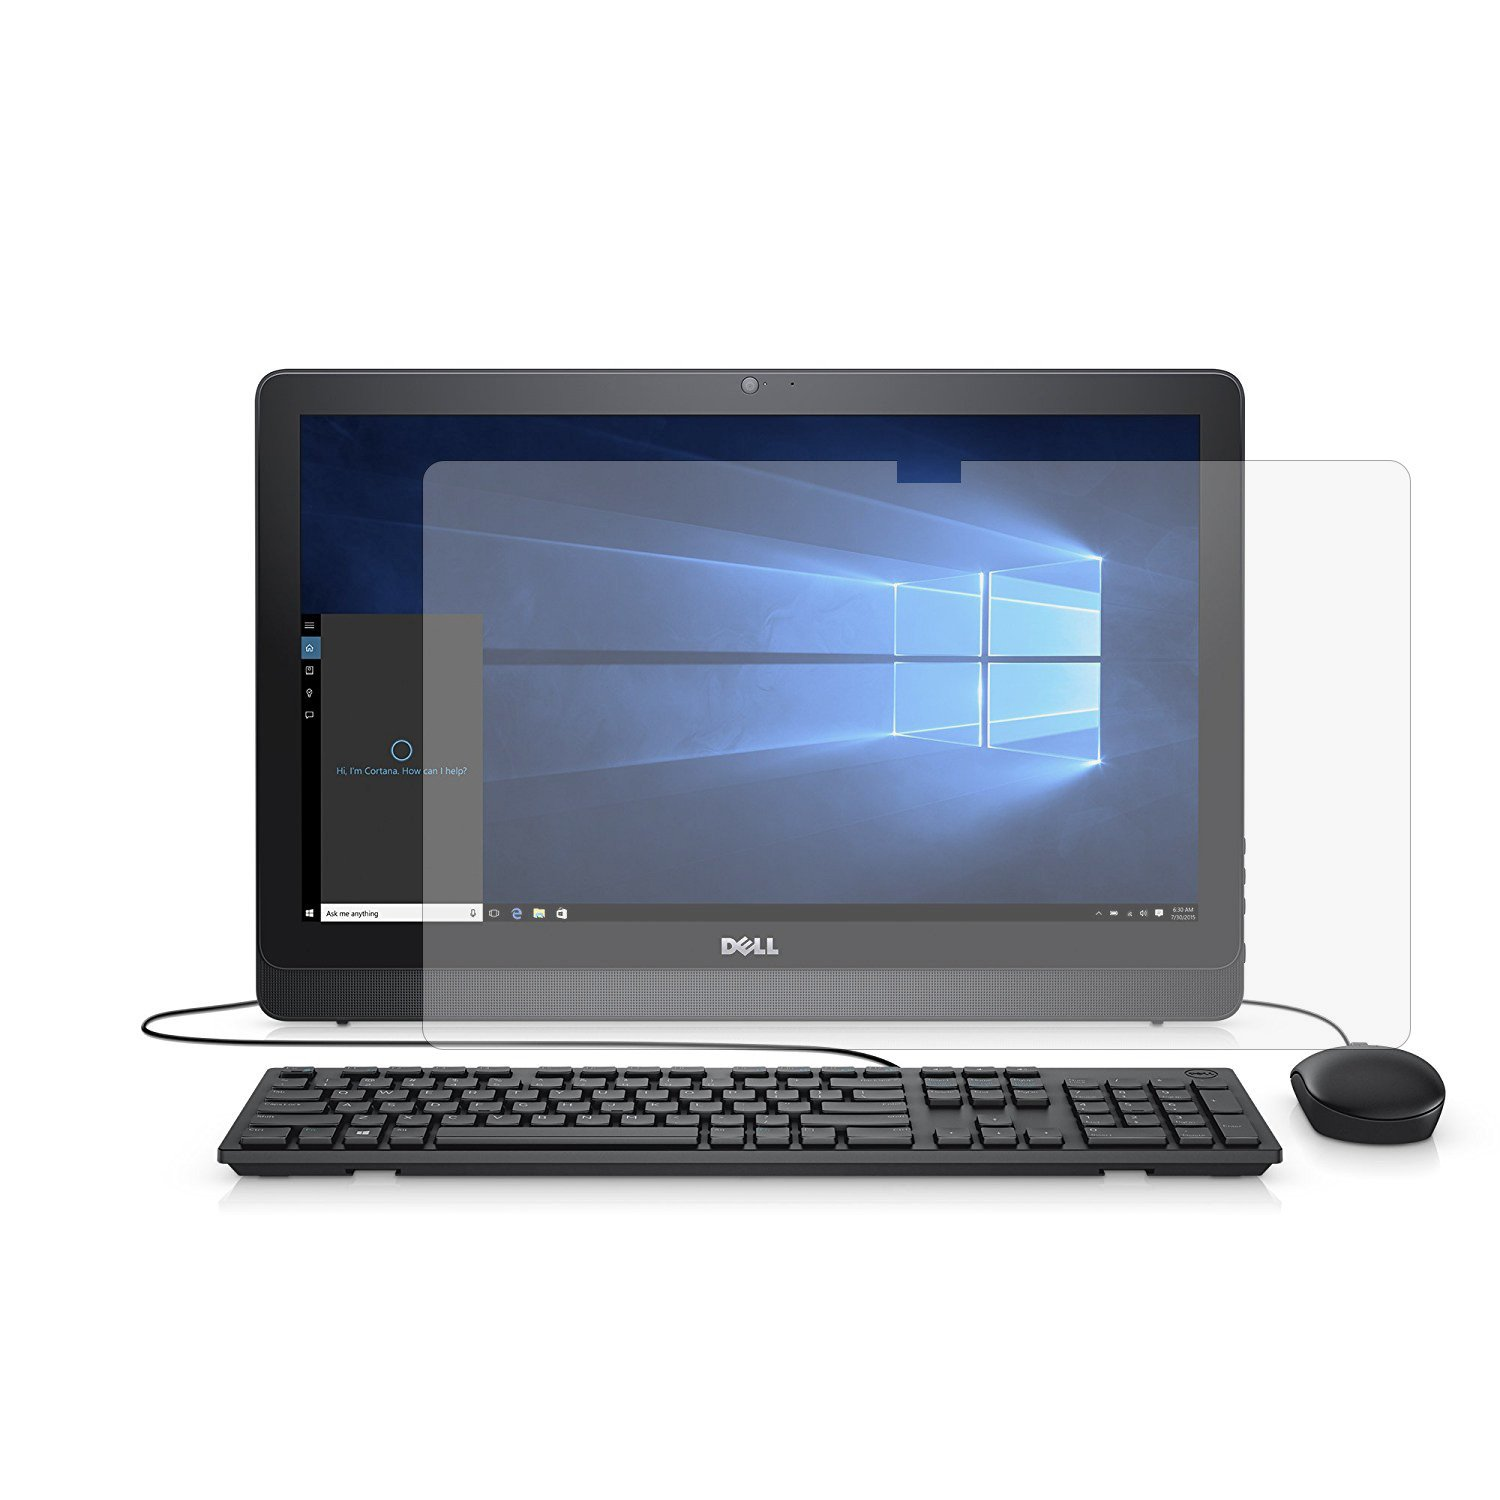 PcProfessionalスクリーンプロテクター( Set of 2 ) for Dell Inspiron 22 3265 21.5